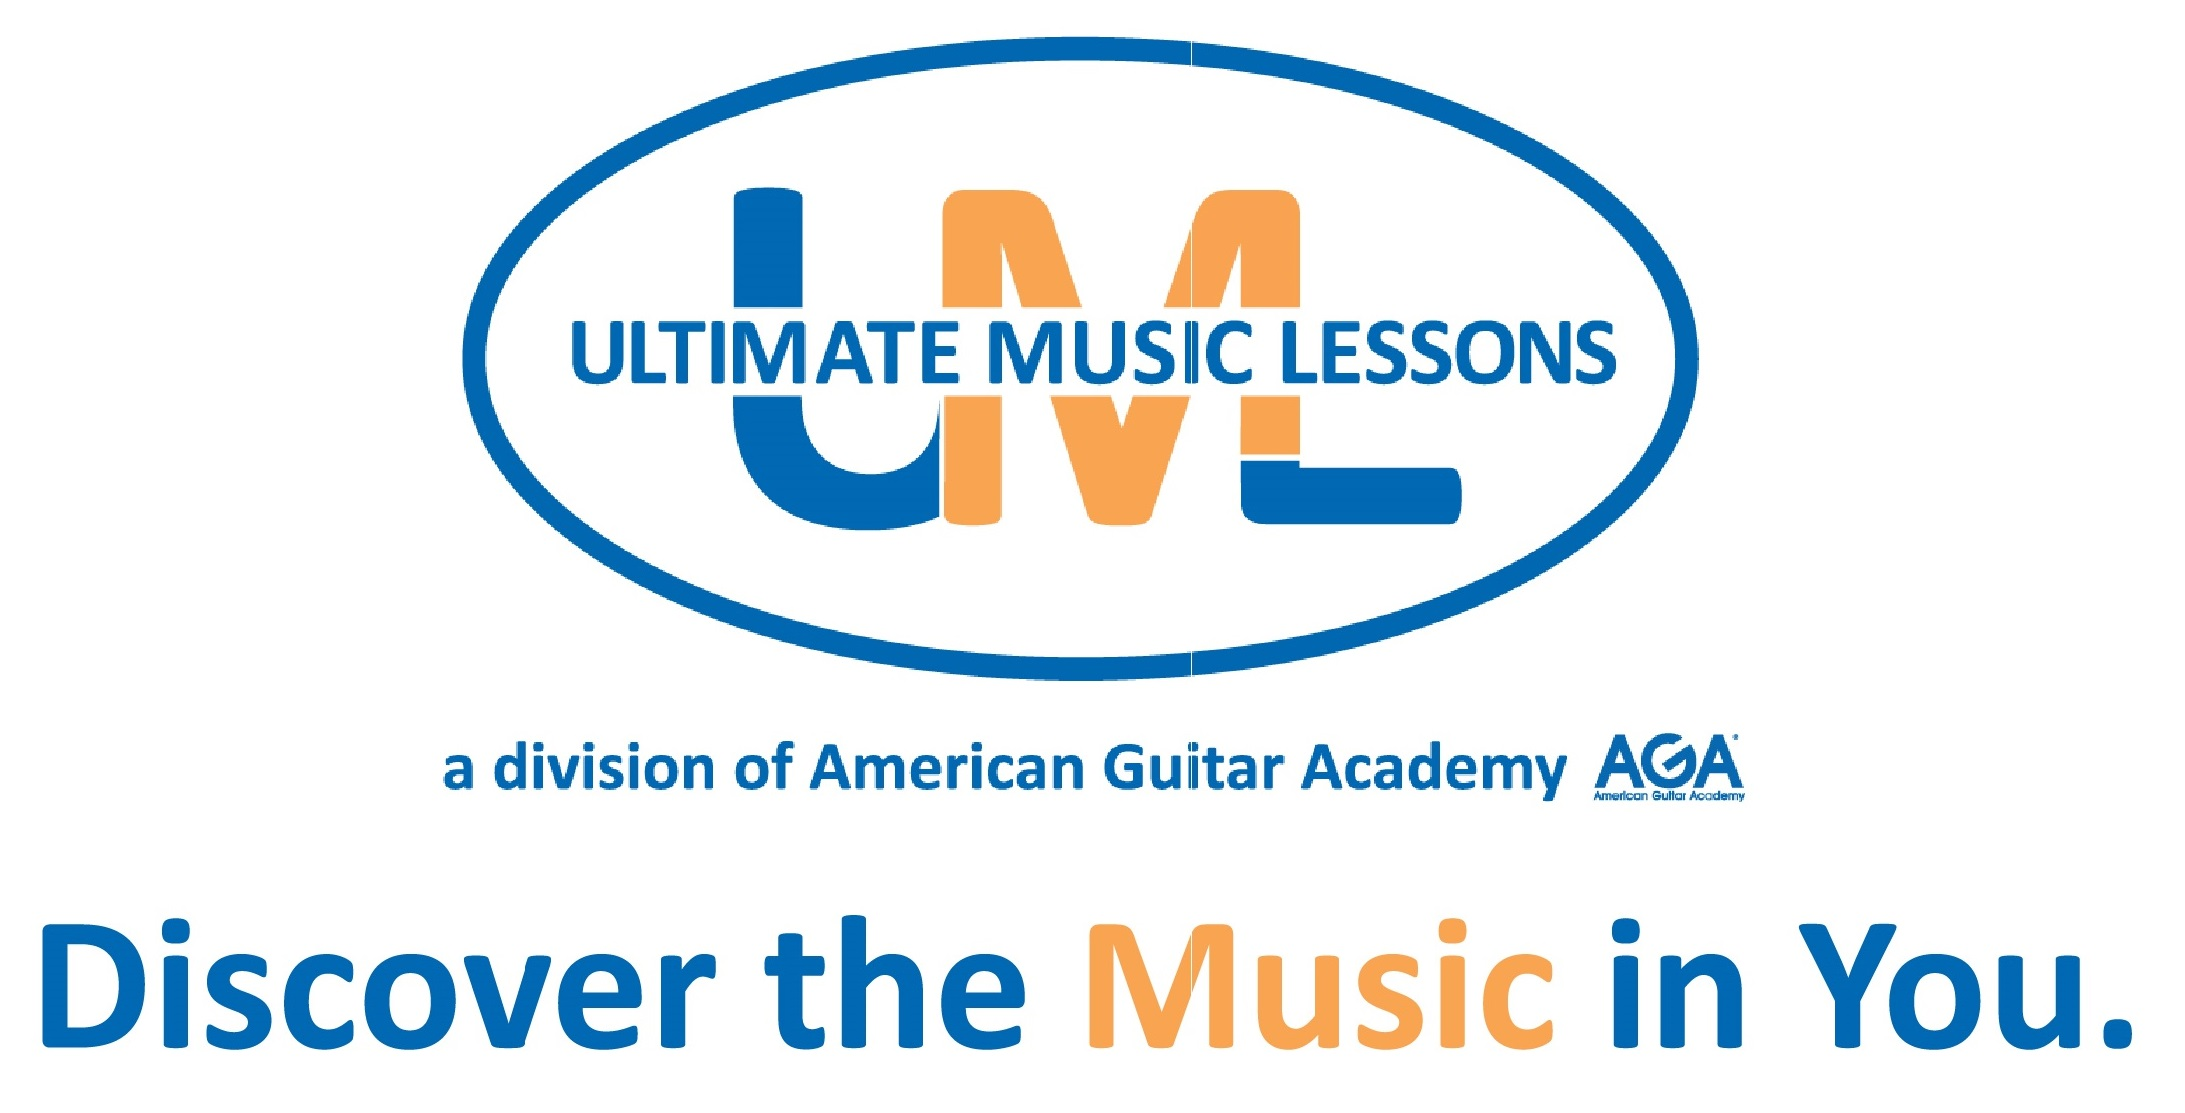 Ultimate Music Lessons